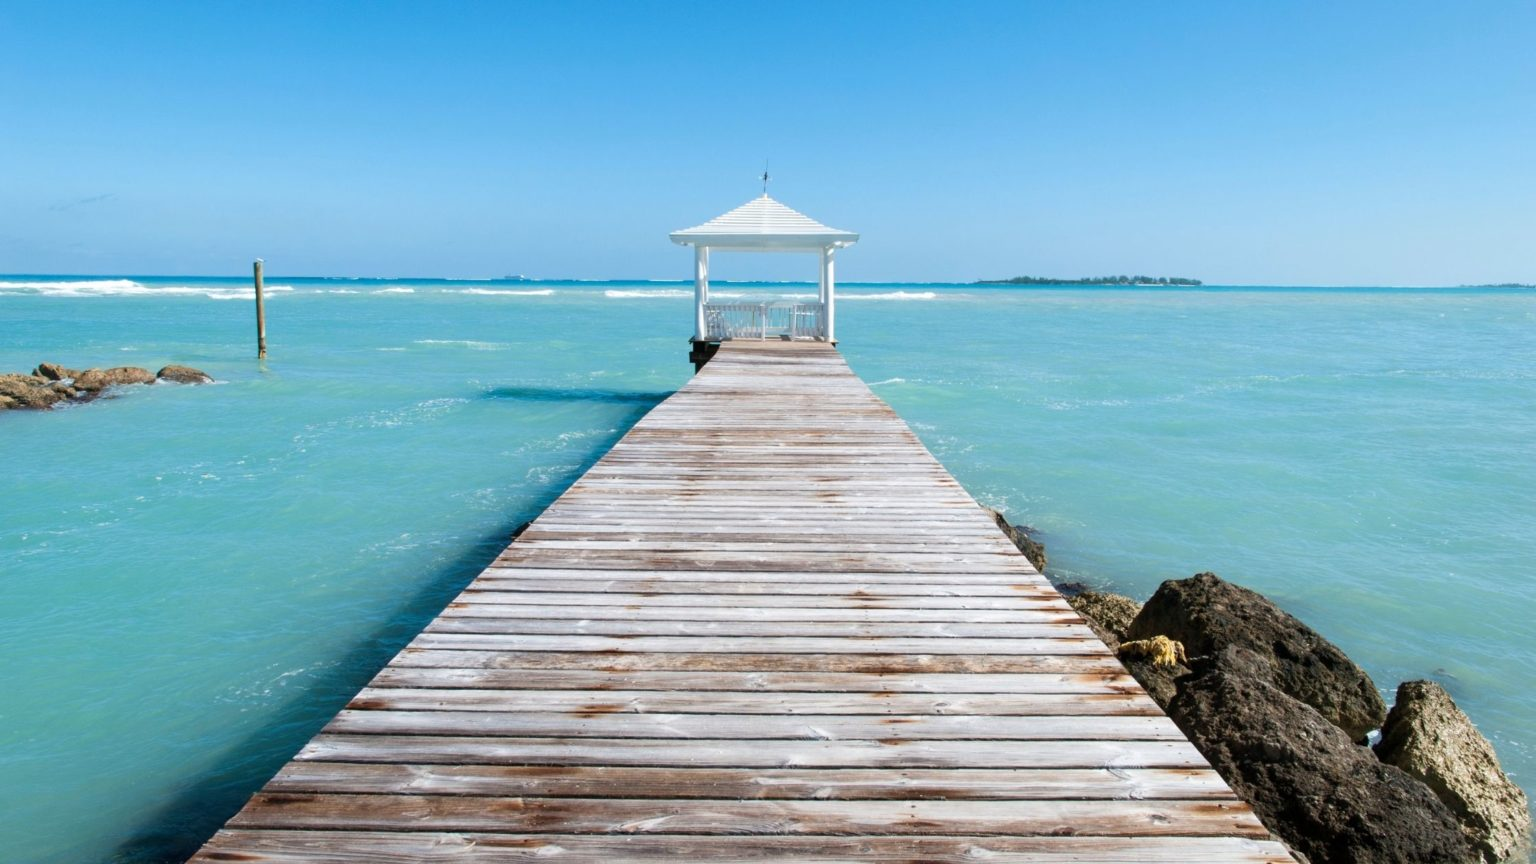 Do You Need a Passport to go to the Bahamas from the U.S.? 1